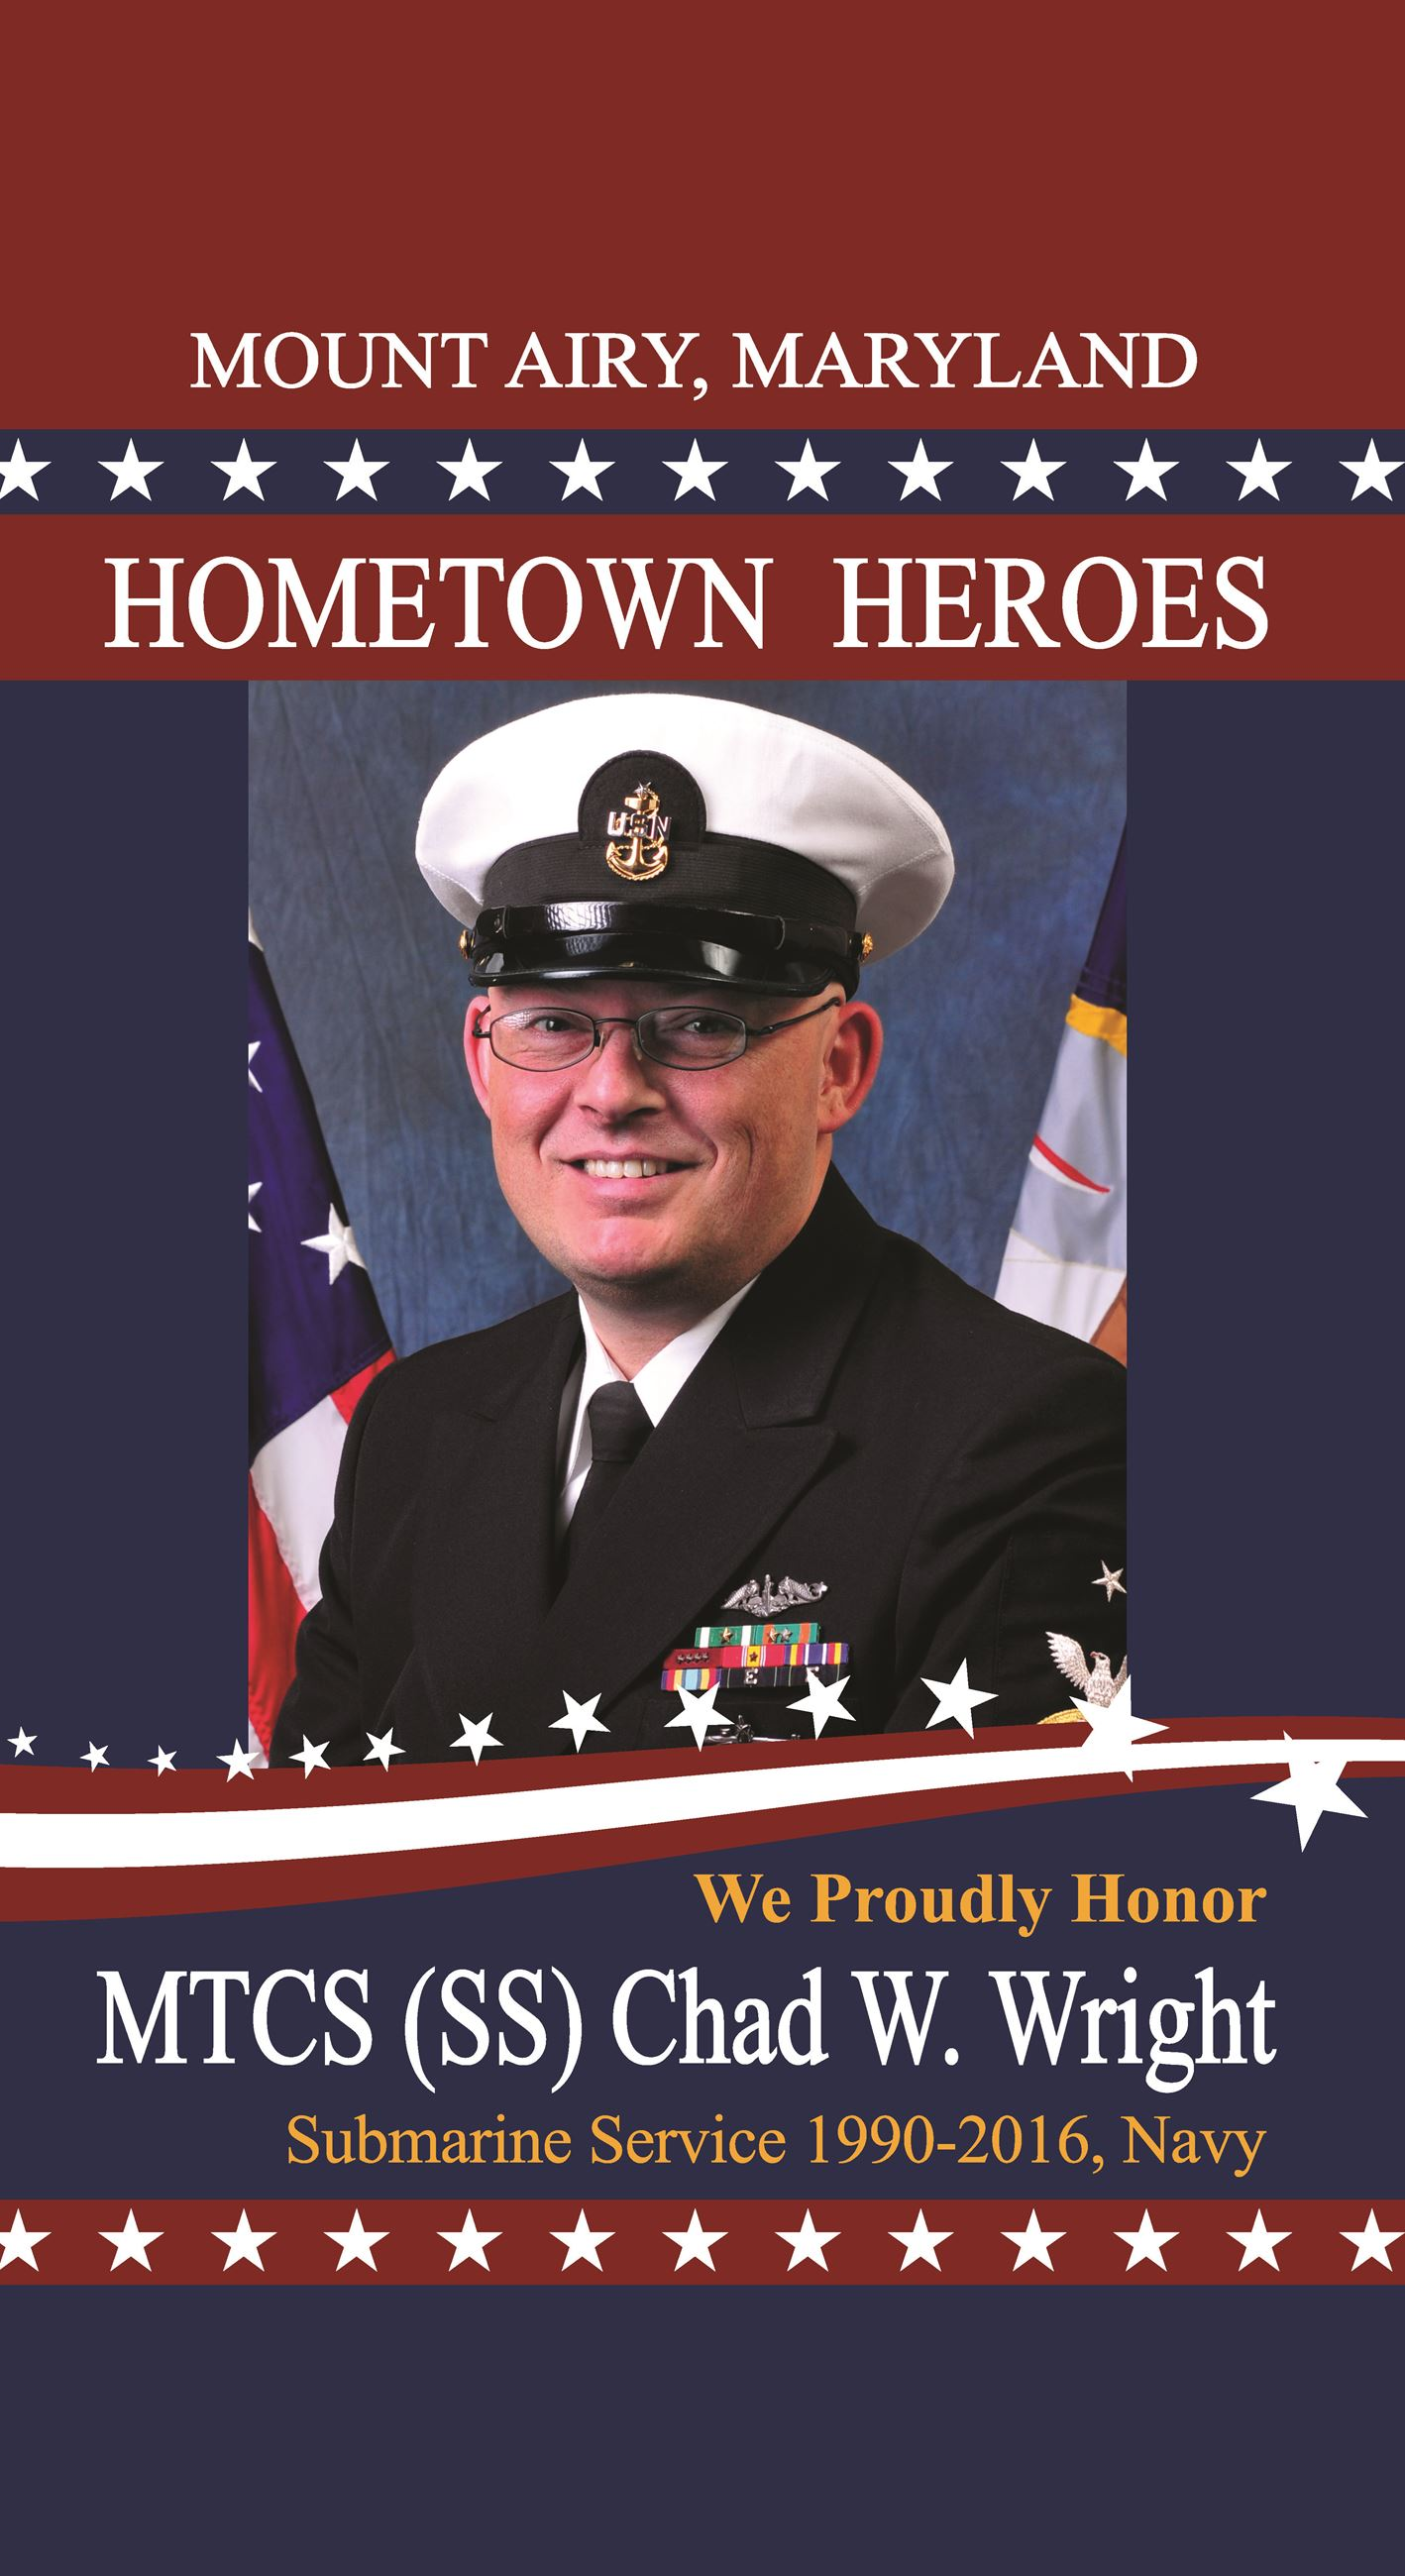 ChadWWright_MtAiryHeroes-Flag-24x44-Proof002